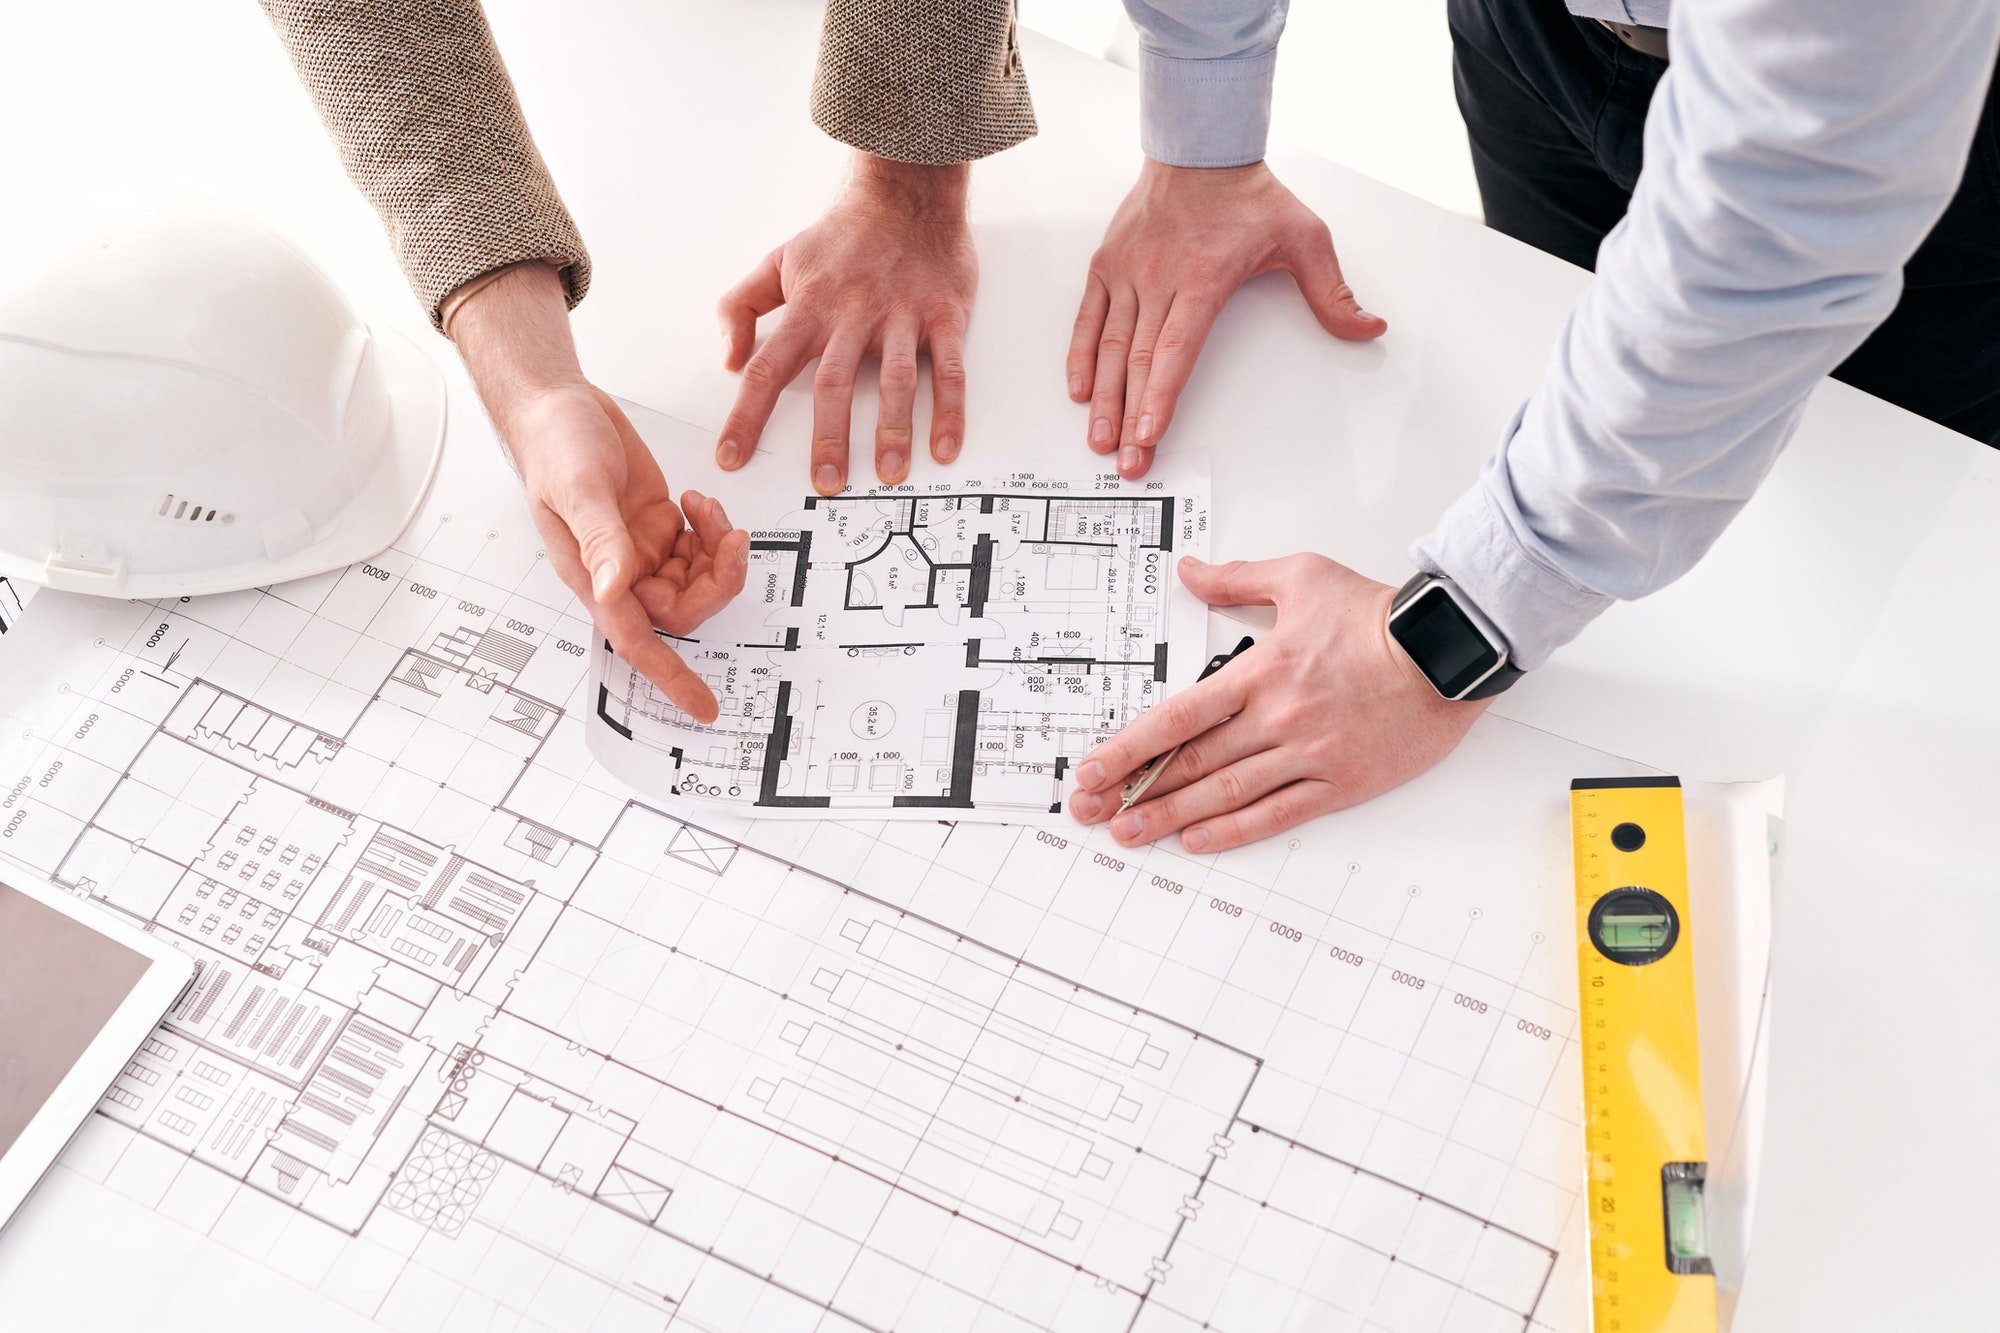 Discussing flat plan with architect